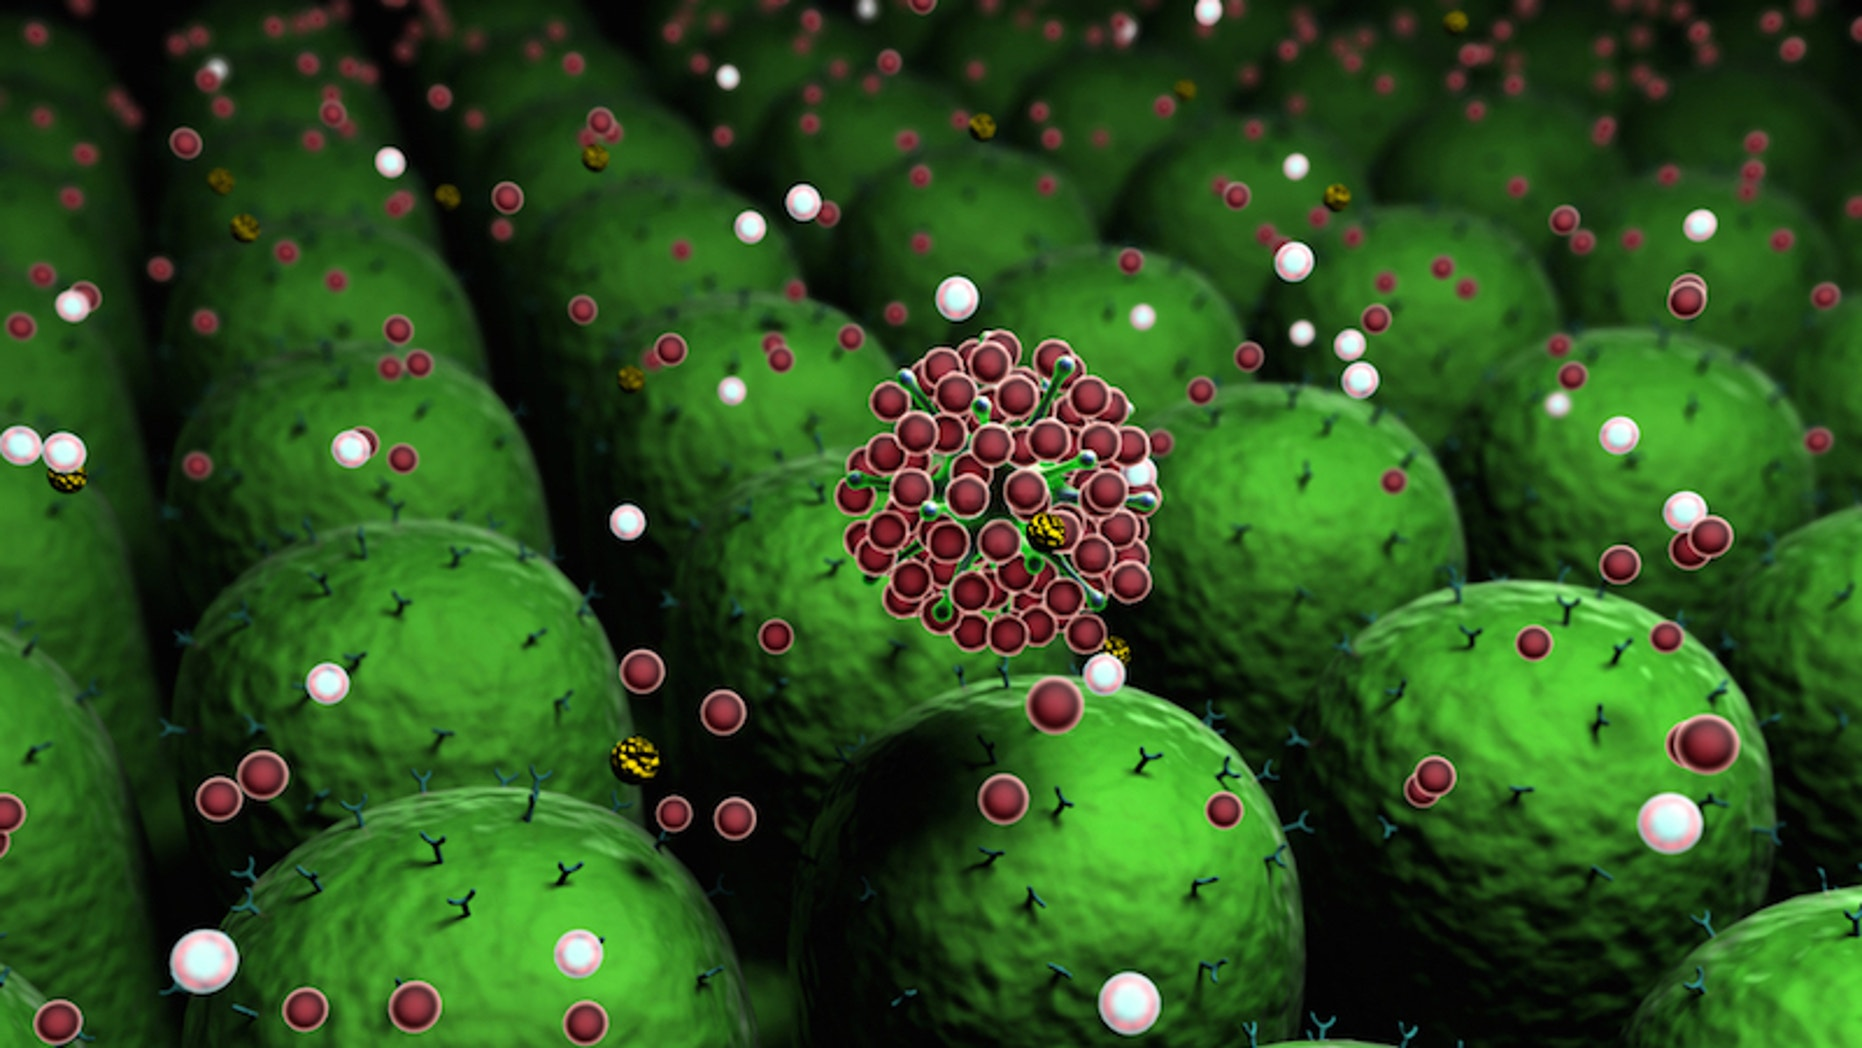 This drawing shows an artist's concept of the molecules of the human immune system at work.